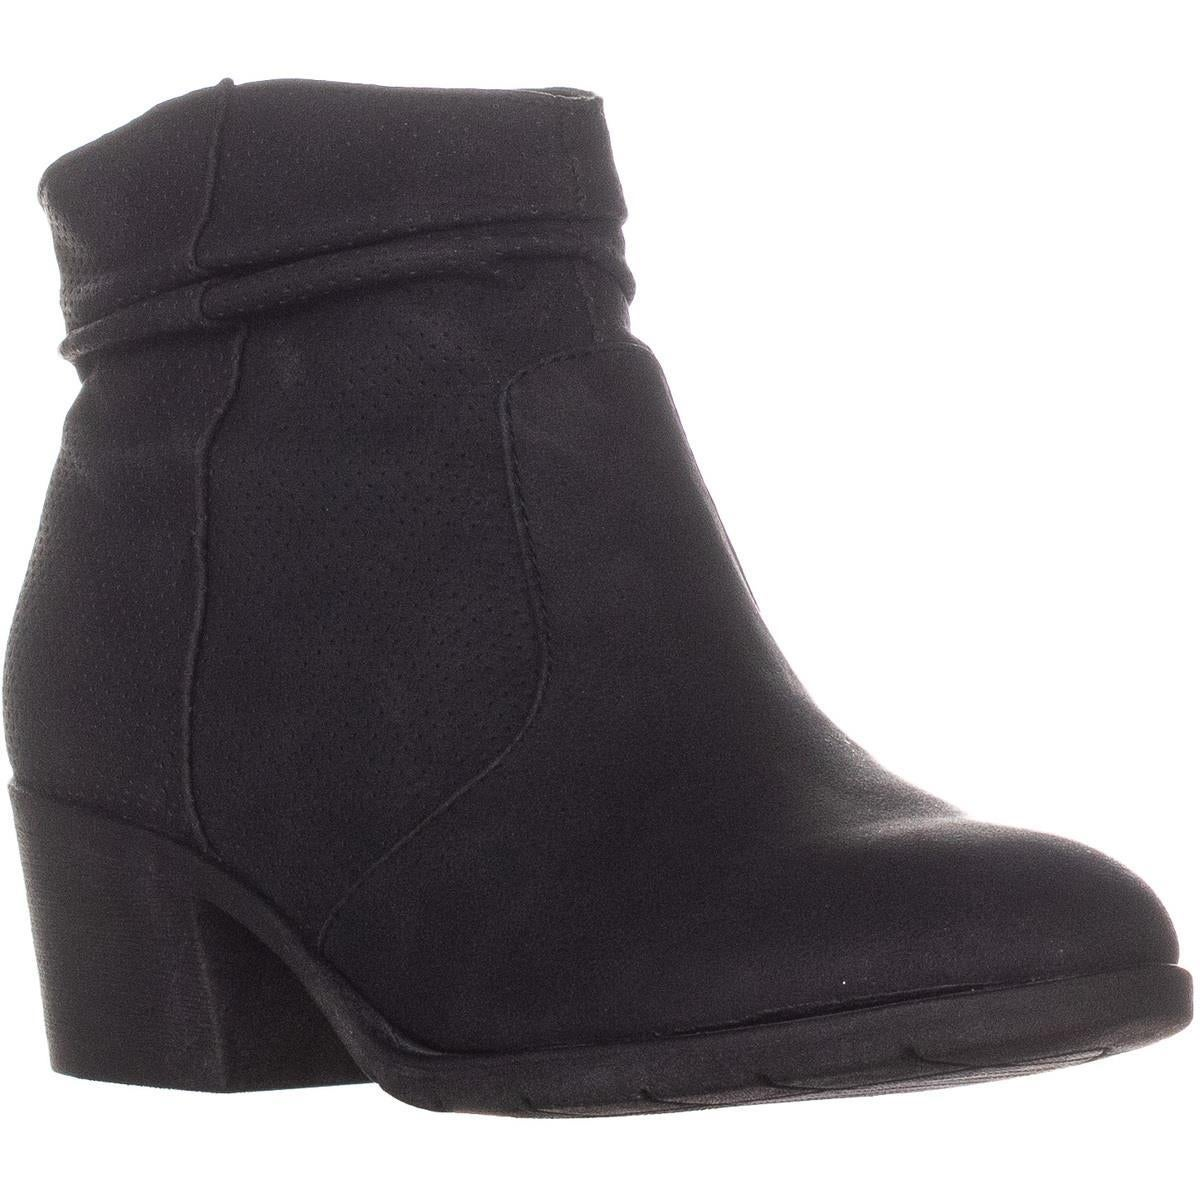 Shop White Mountain Uptown Block Heel Ankle Boots Black On Sale